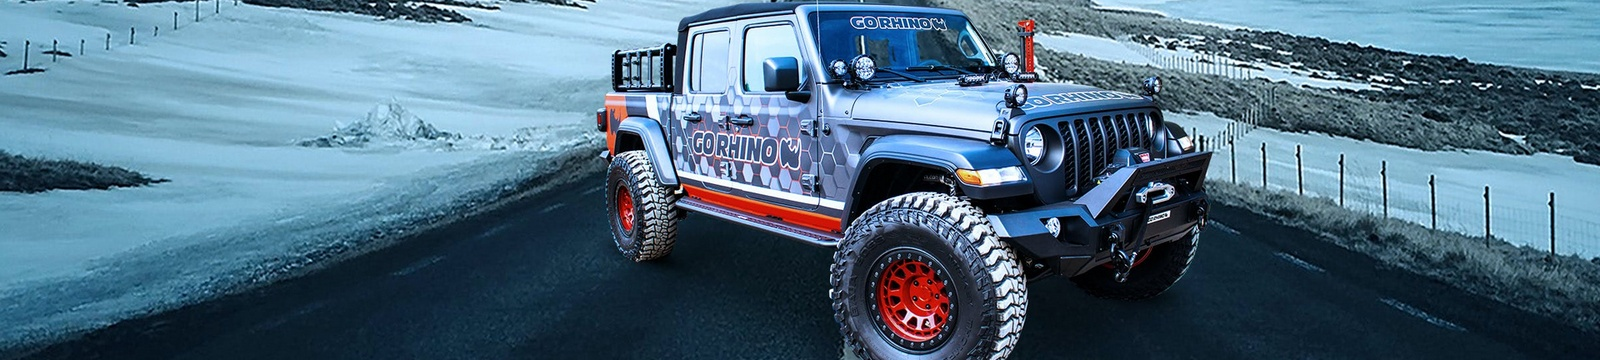 Go Rhino Jeep Gladiator fully accessorized from Crown Auto Parts